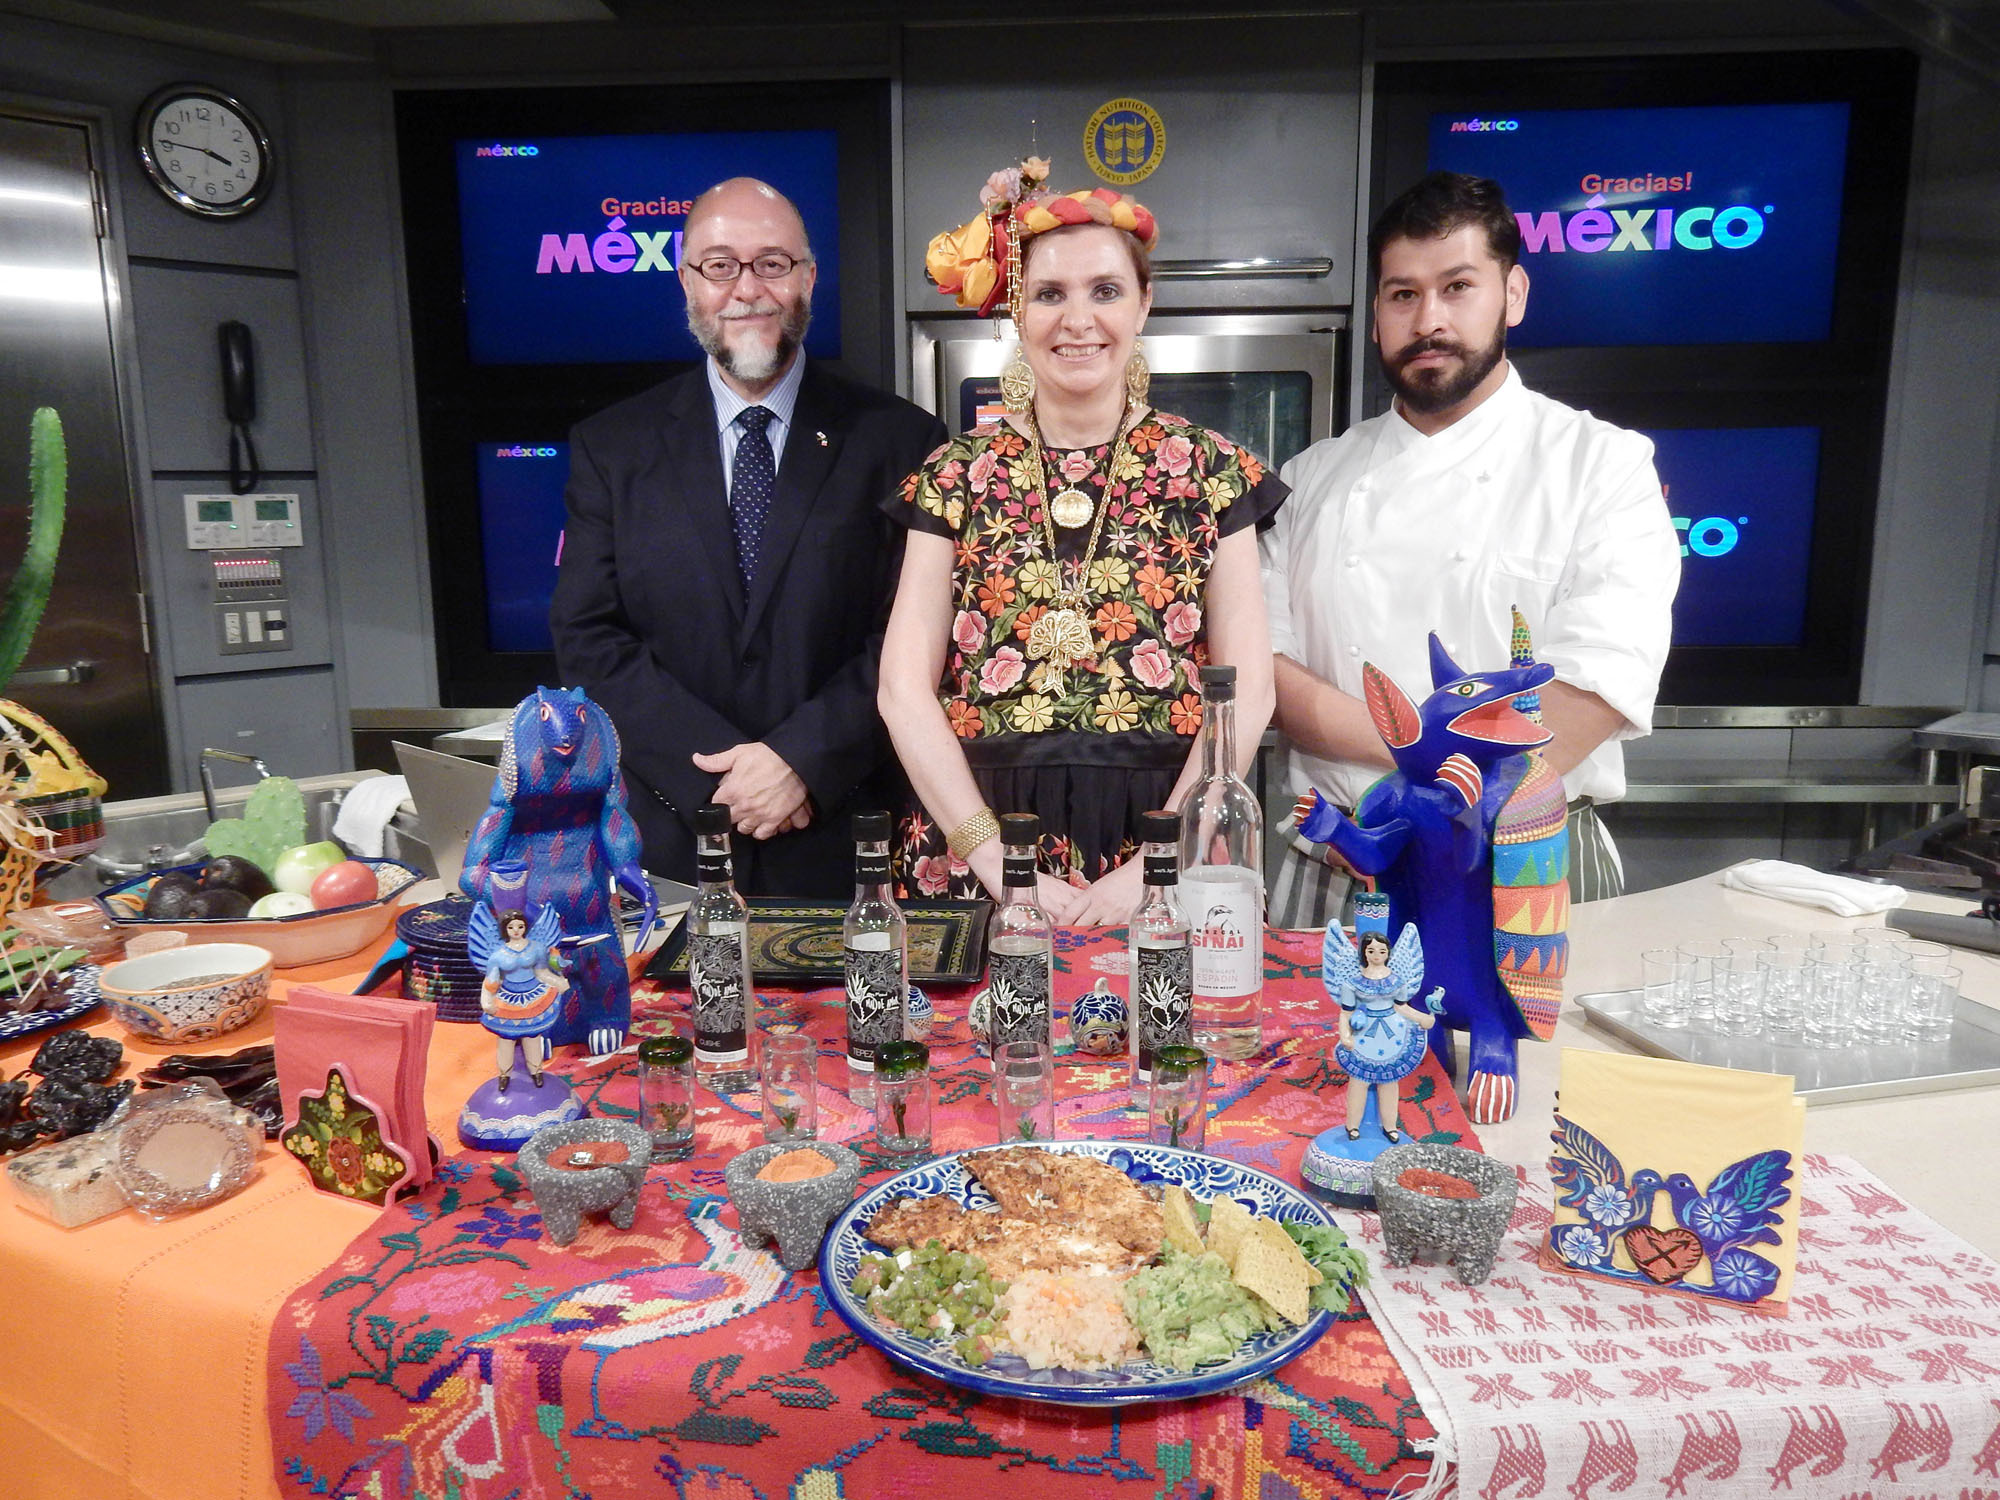 Director of the Mexican Tourism Board Guillermo Eguiarte (left) poses with his wife Lolita and Mexican Embassy chef Victor Vazquez at a Mexican cultural and culinary lecture at the Hattori Nutrition College in Tokyo on June 11. | MAKI YAMAMOTO-ARAKAWA